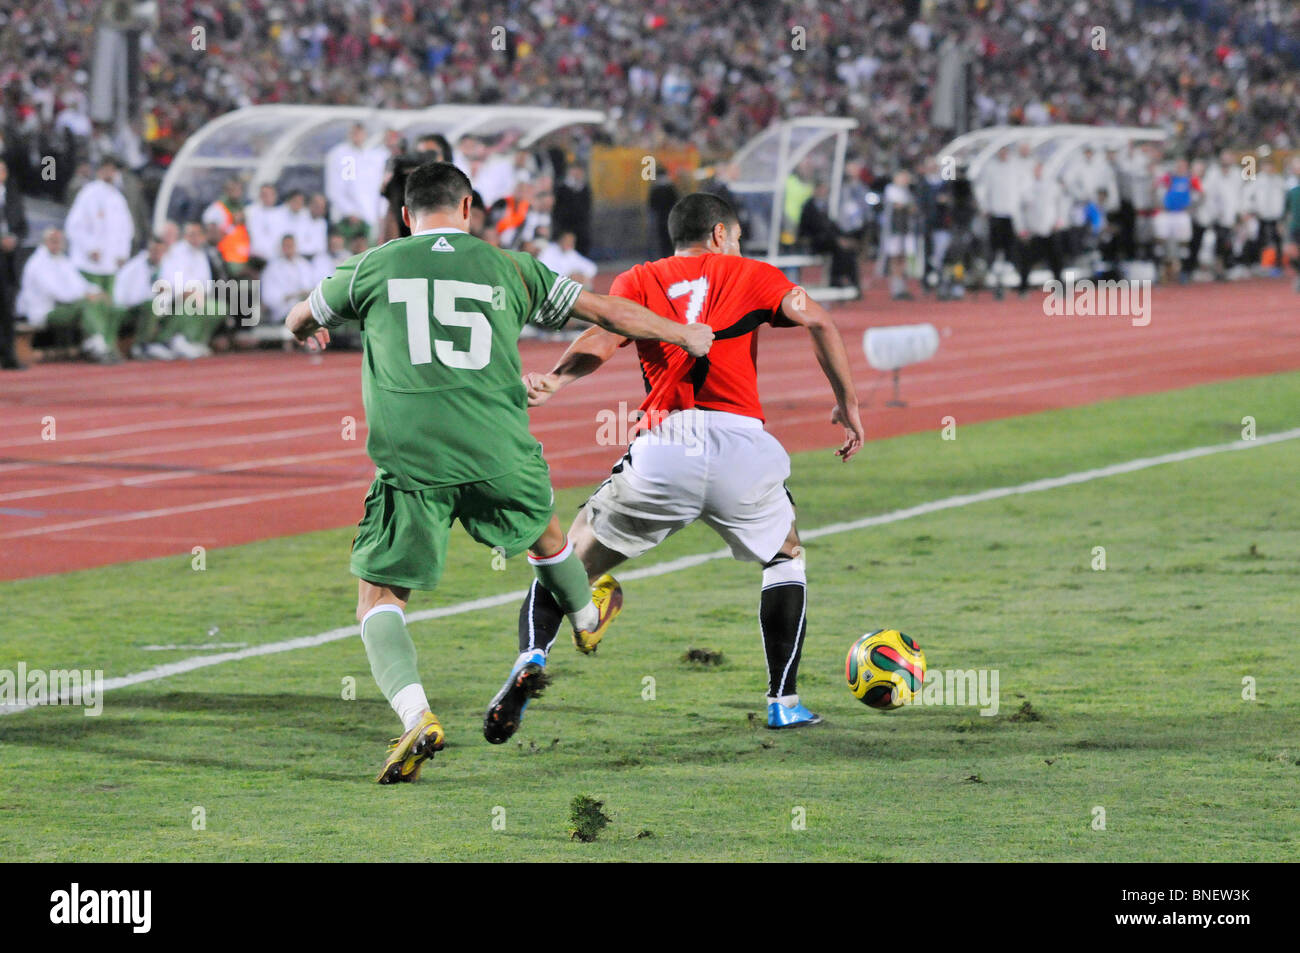 The infamous Egypt vs Algeria WM qualification match in Cairo's international stadium that ended 2:0 - Stock Image